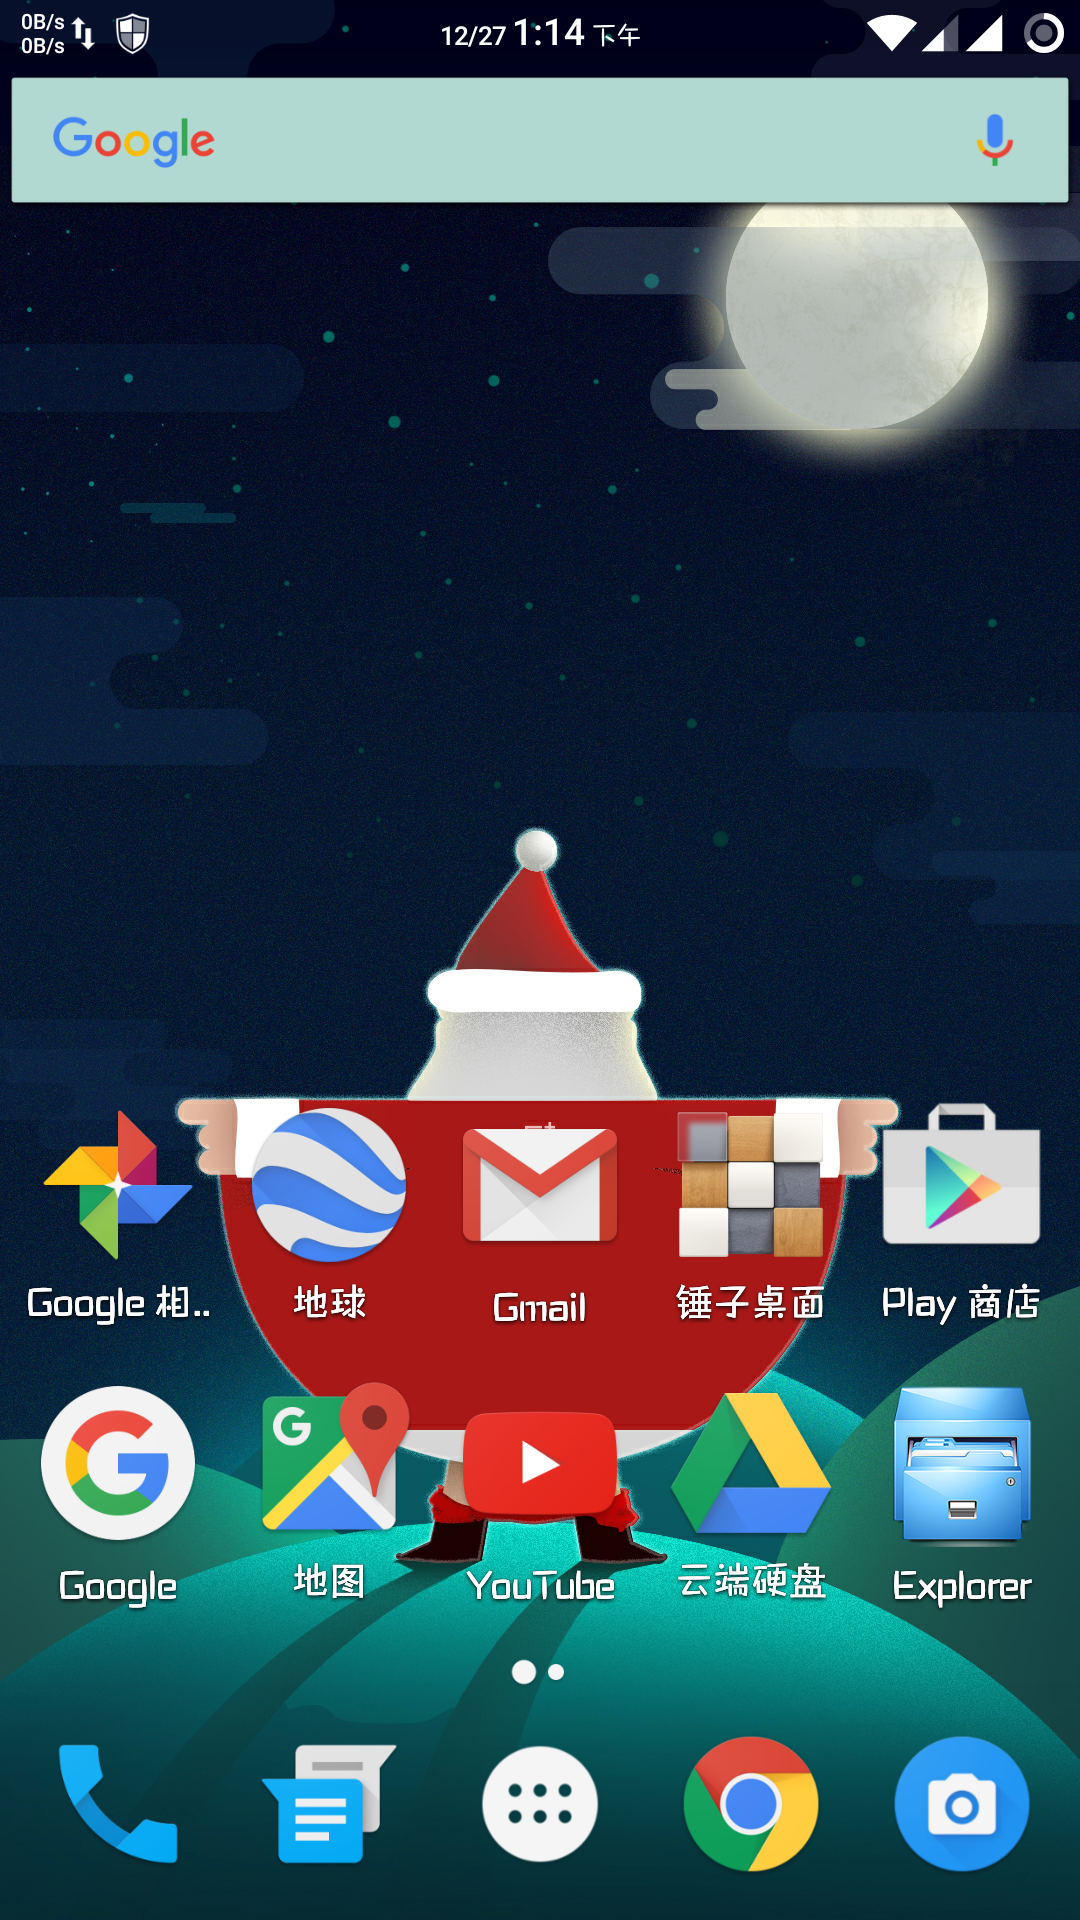 Screenshot_2015-12-27-13-14-16.png